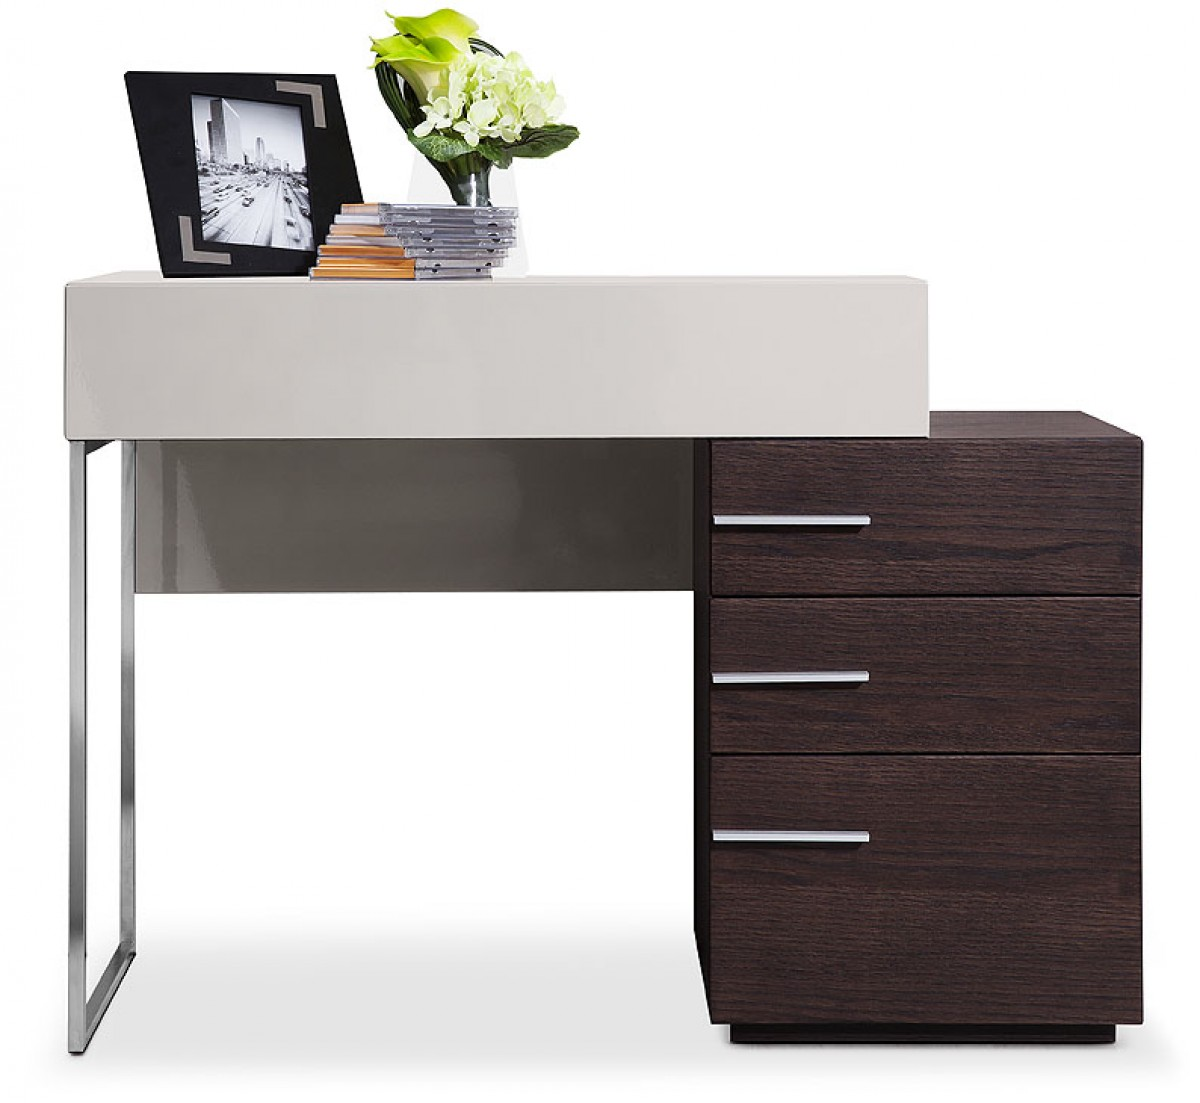 Modrest Daytona Modern Brown Oak Vanity Dresser Office